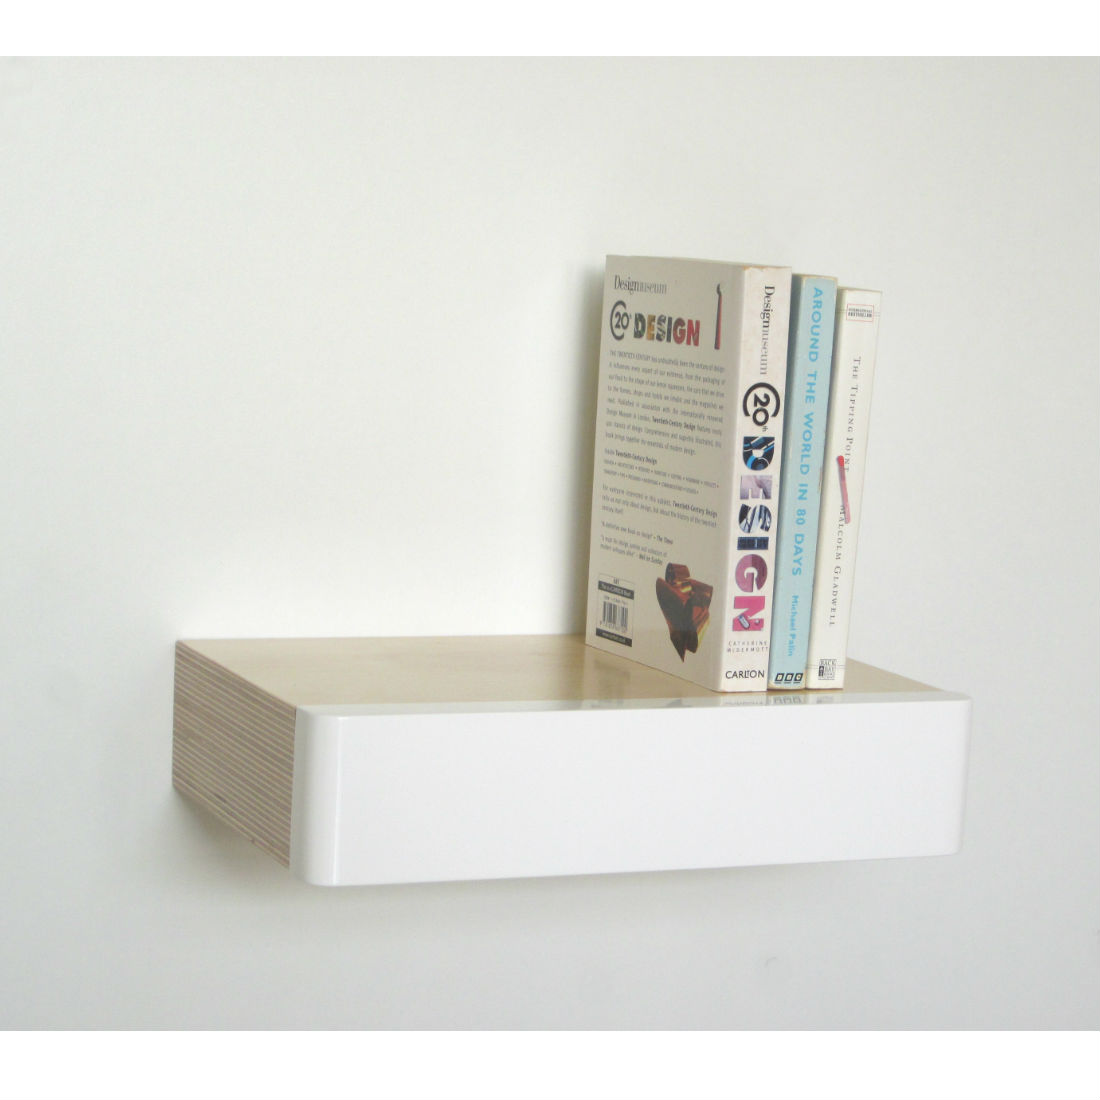 Pacco Floating Shelf Drawer as bookshelf from brightblueliving.com